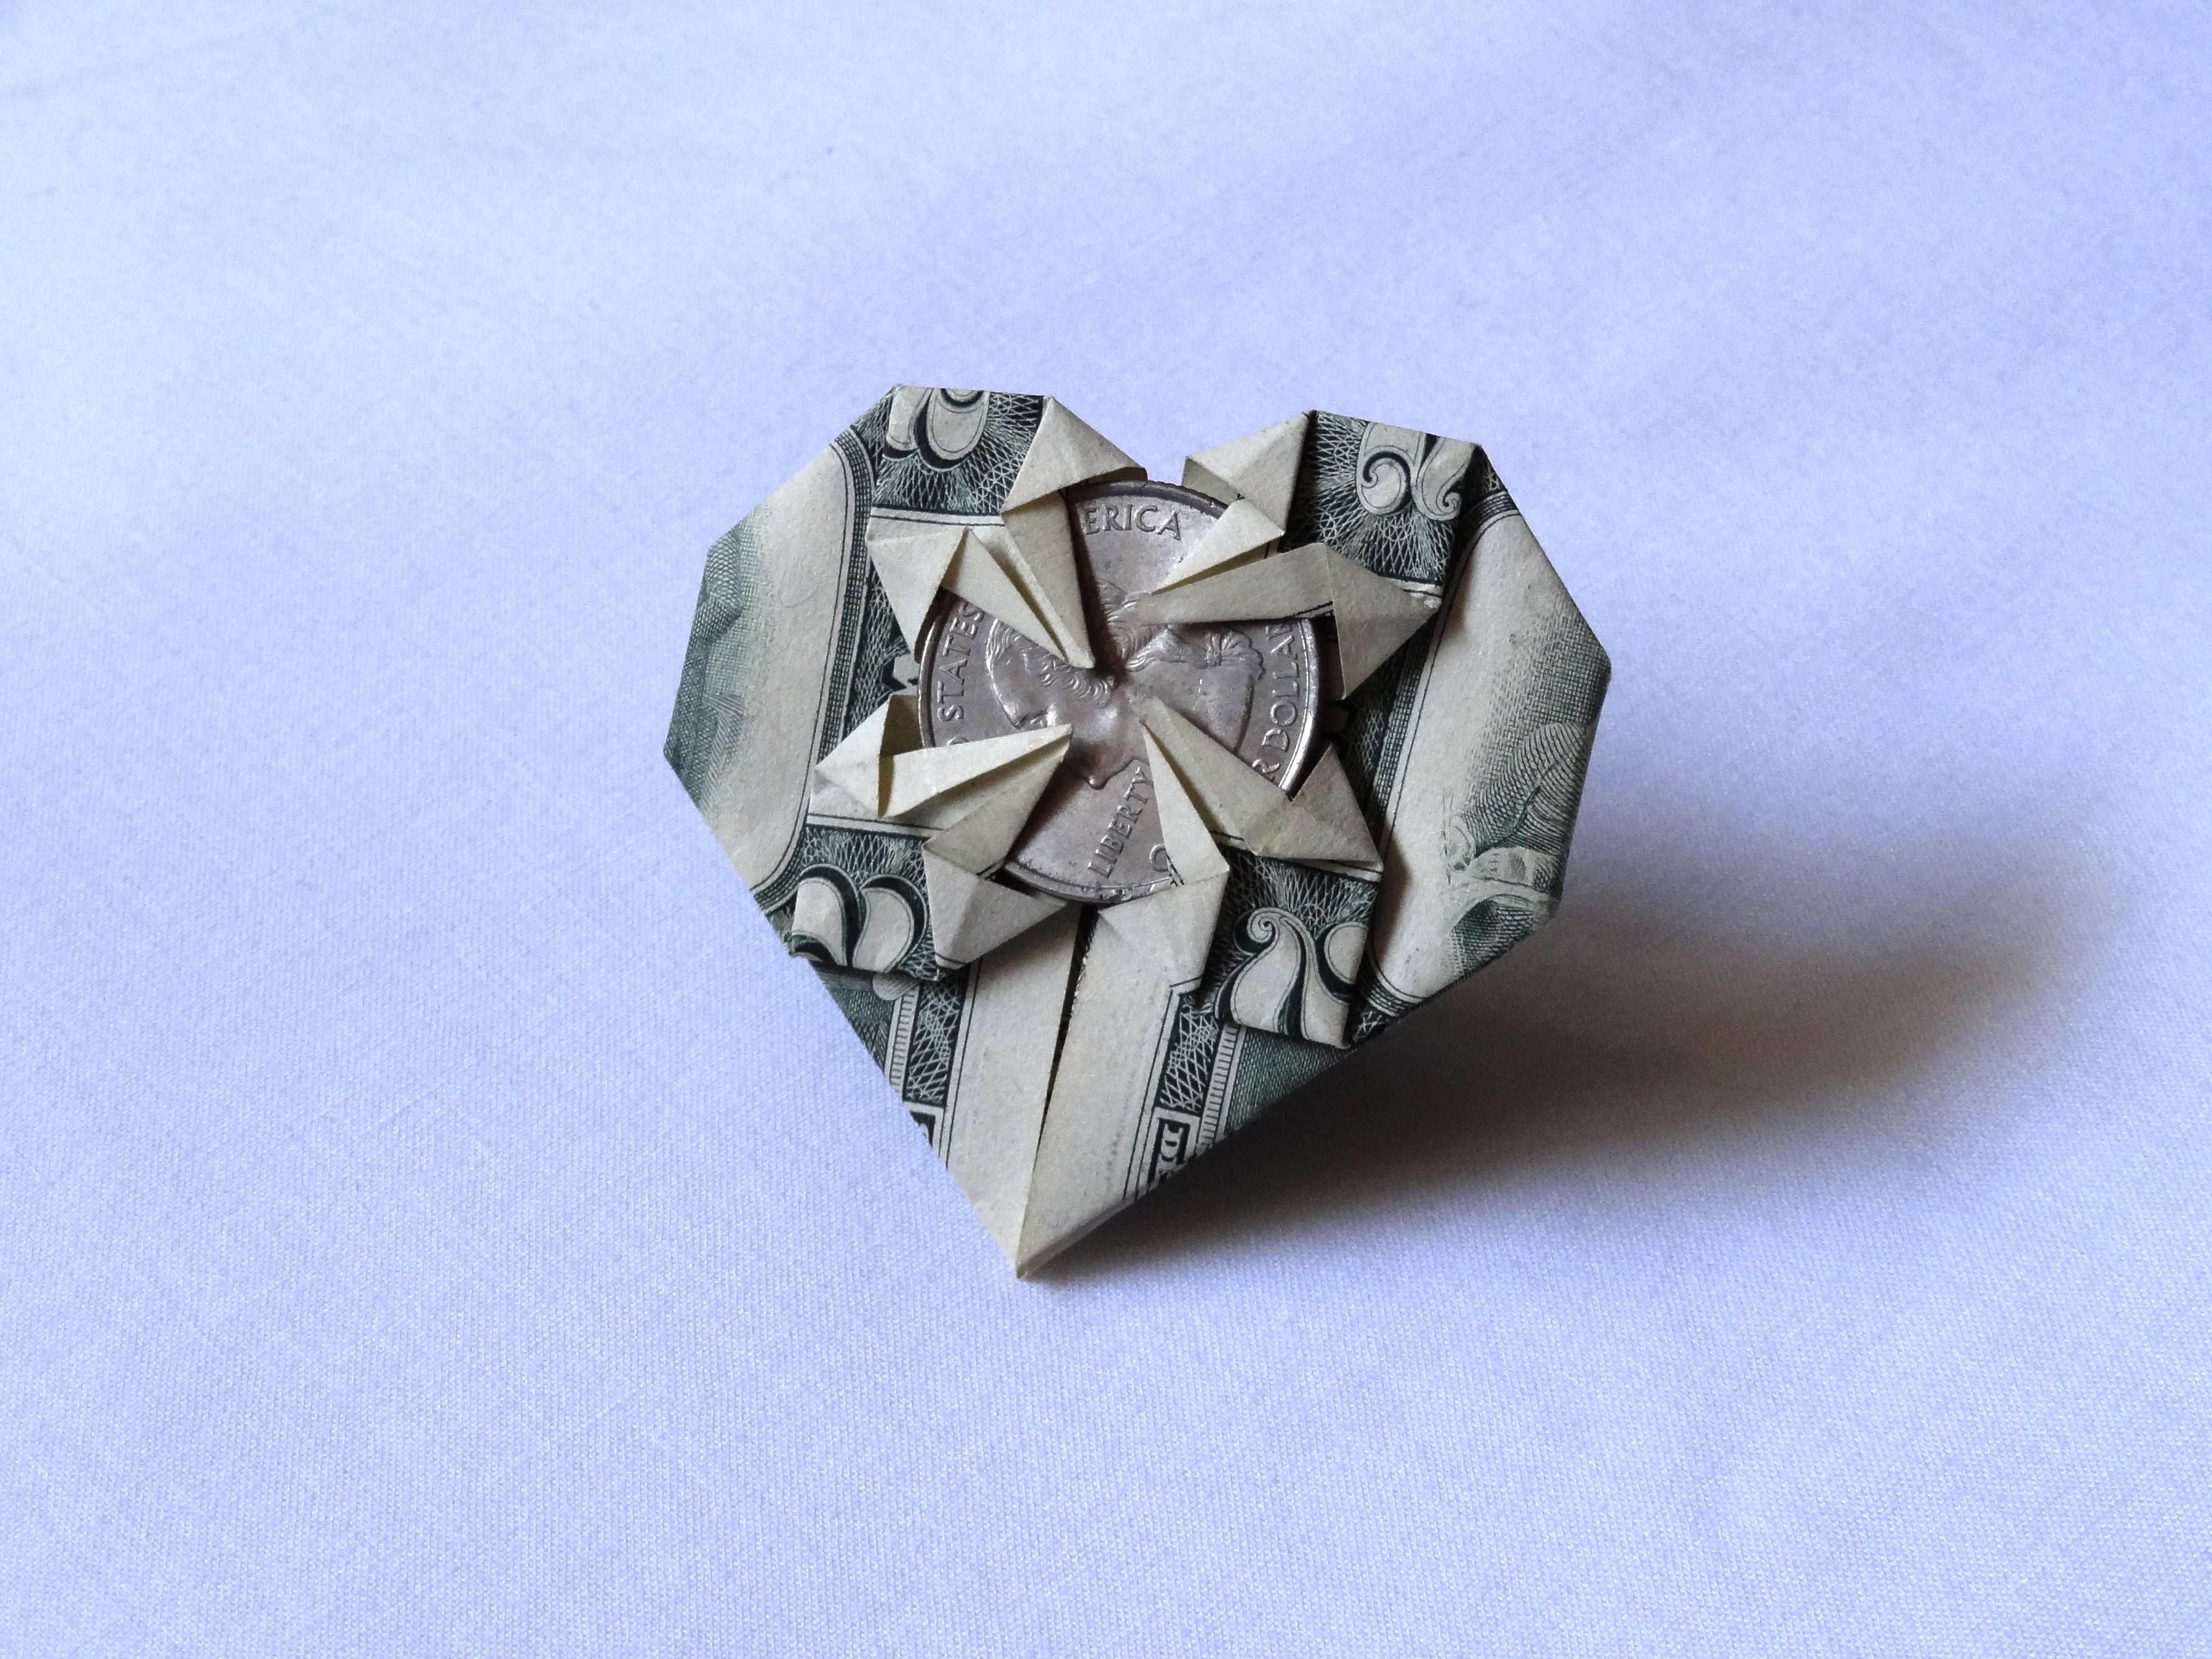 Decorative Money Origami Heart: Video Tutorial and Picture ... | 3456x4608